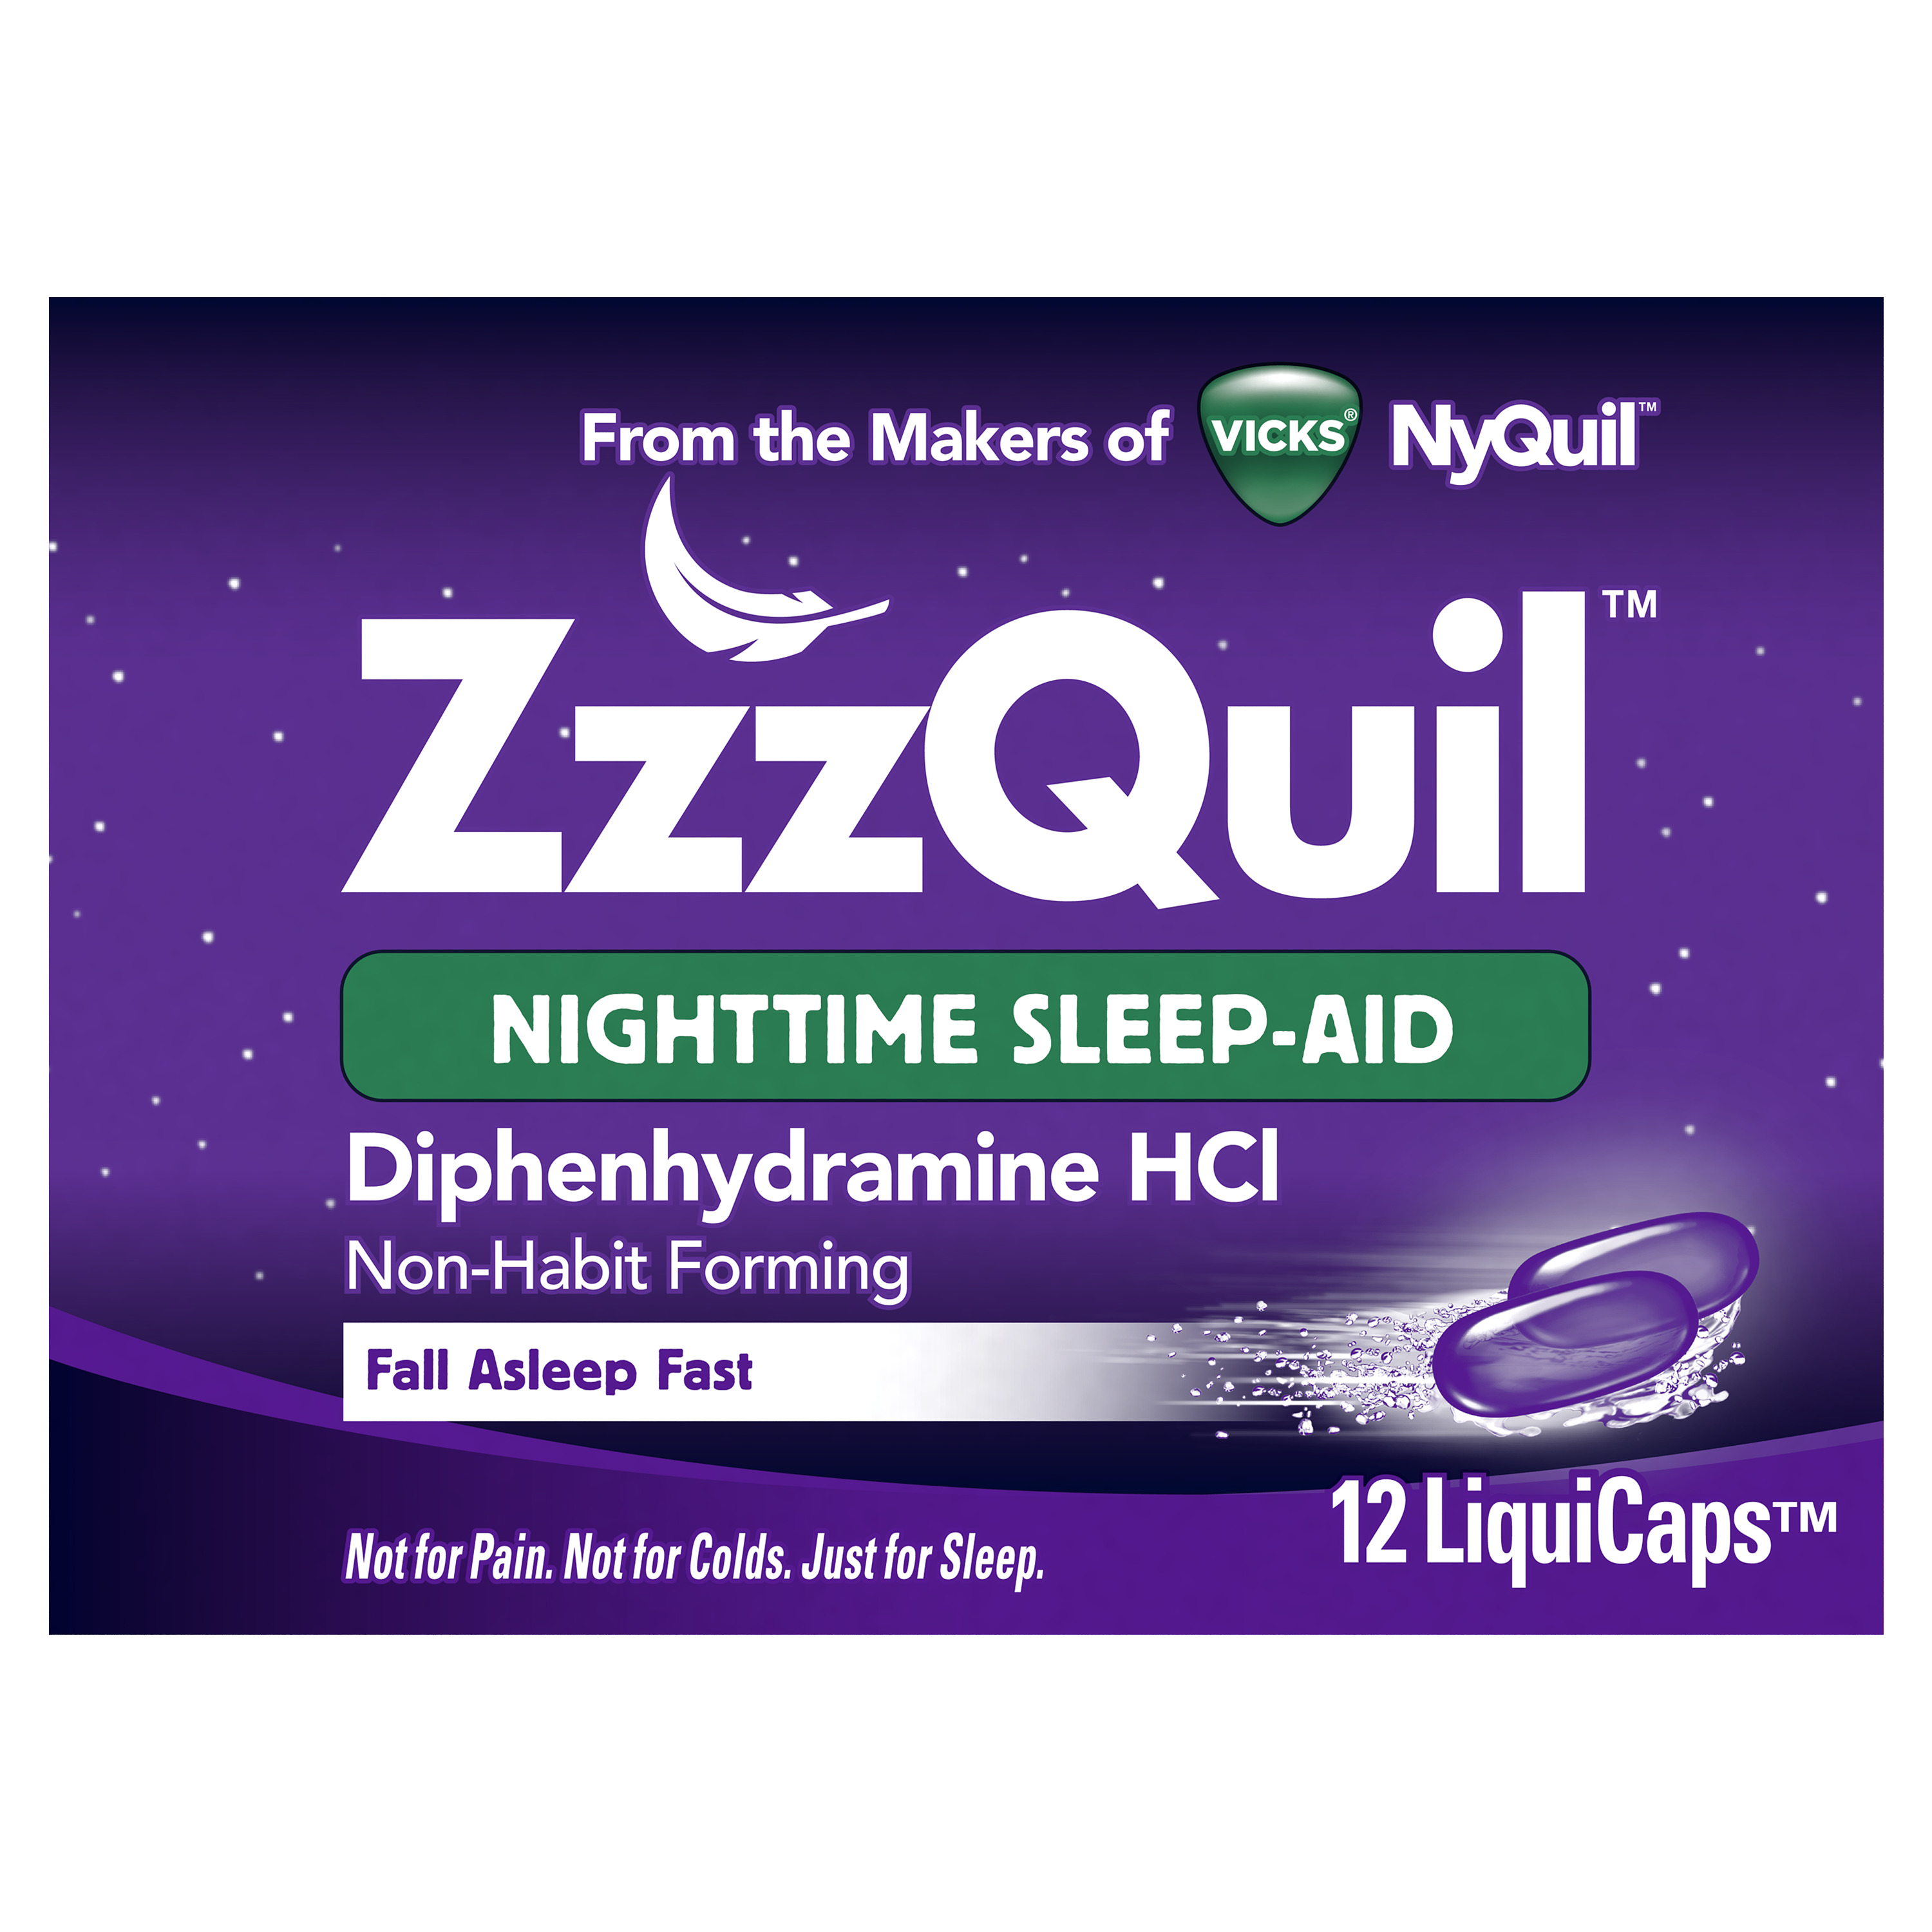 Vicks ZzzQuil Nighttime Sleep Aid, Non-Habit Forming, Fall Asleep Fast and Wake Refreshed, 12 Count LiquiCaps